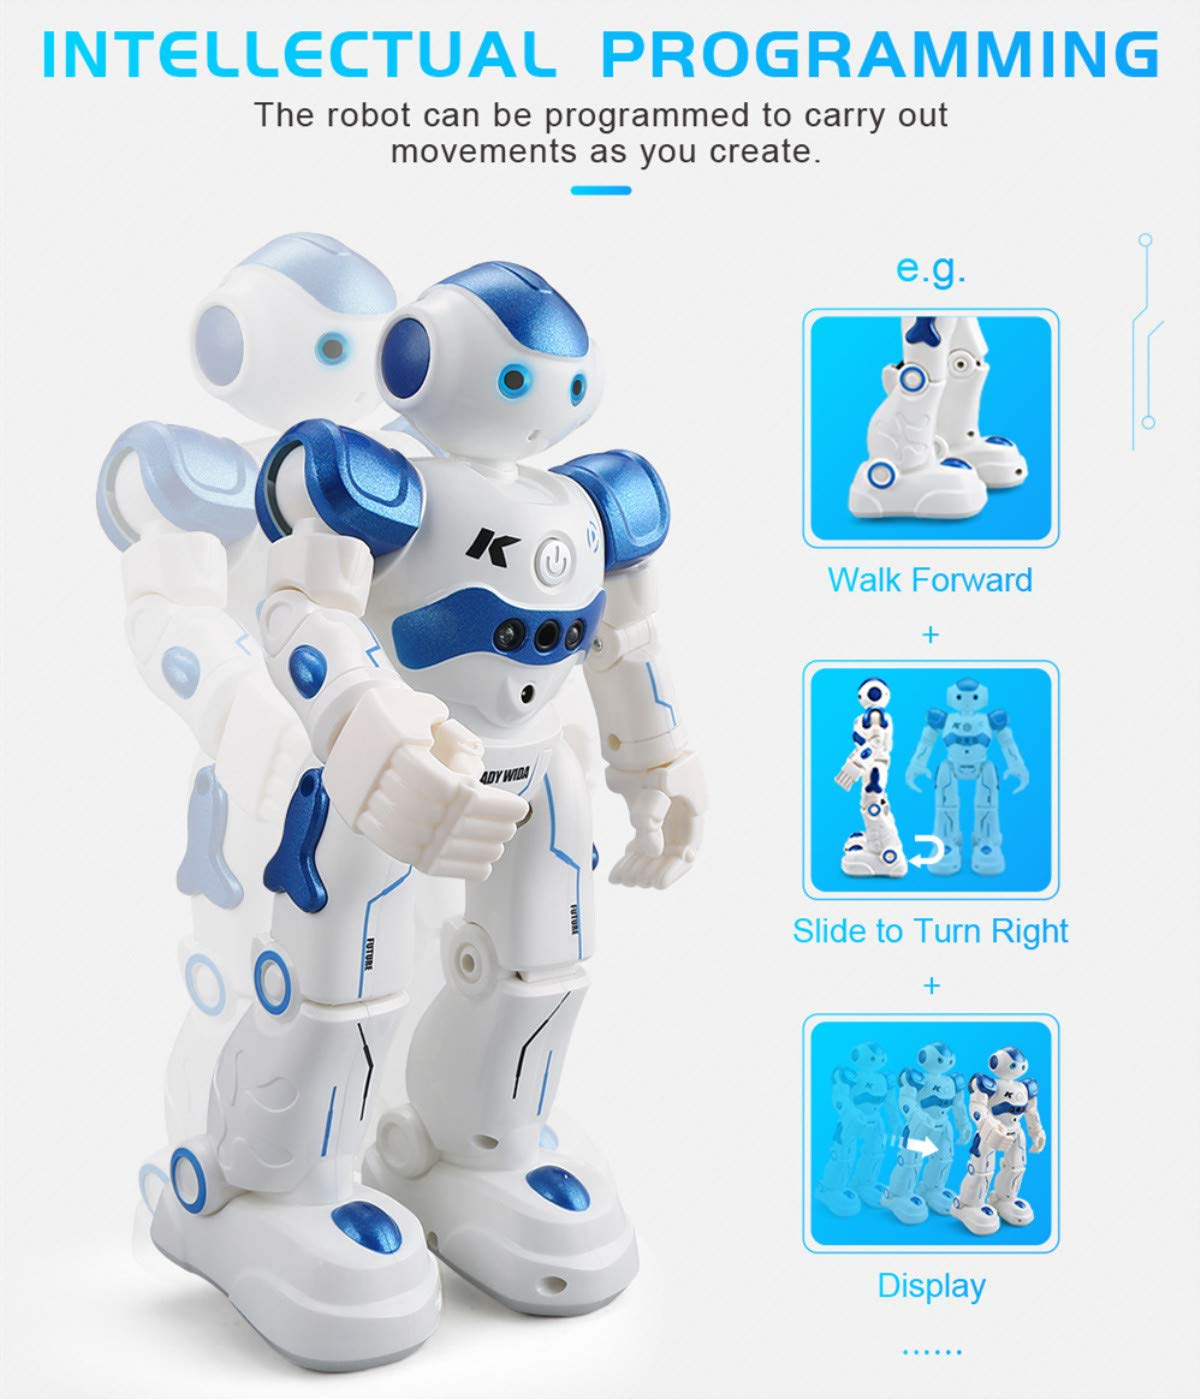 WEECOC Smart Robot Toys Gesture Control Remote Control Robot Kids Toys Birthday Can Singing Dancing Speaking Two Walking Models (White) by WEECOC (Image #8)